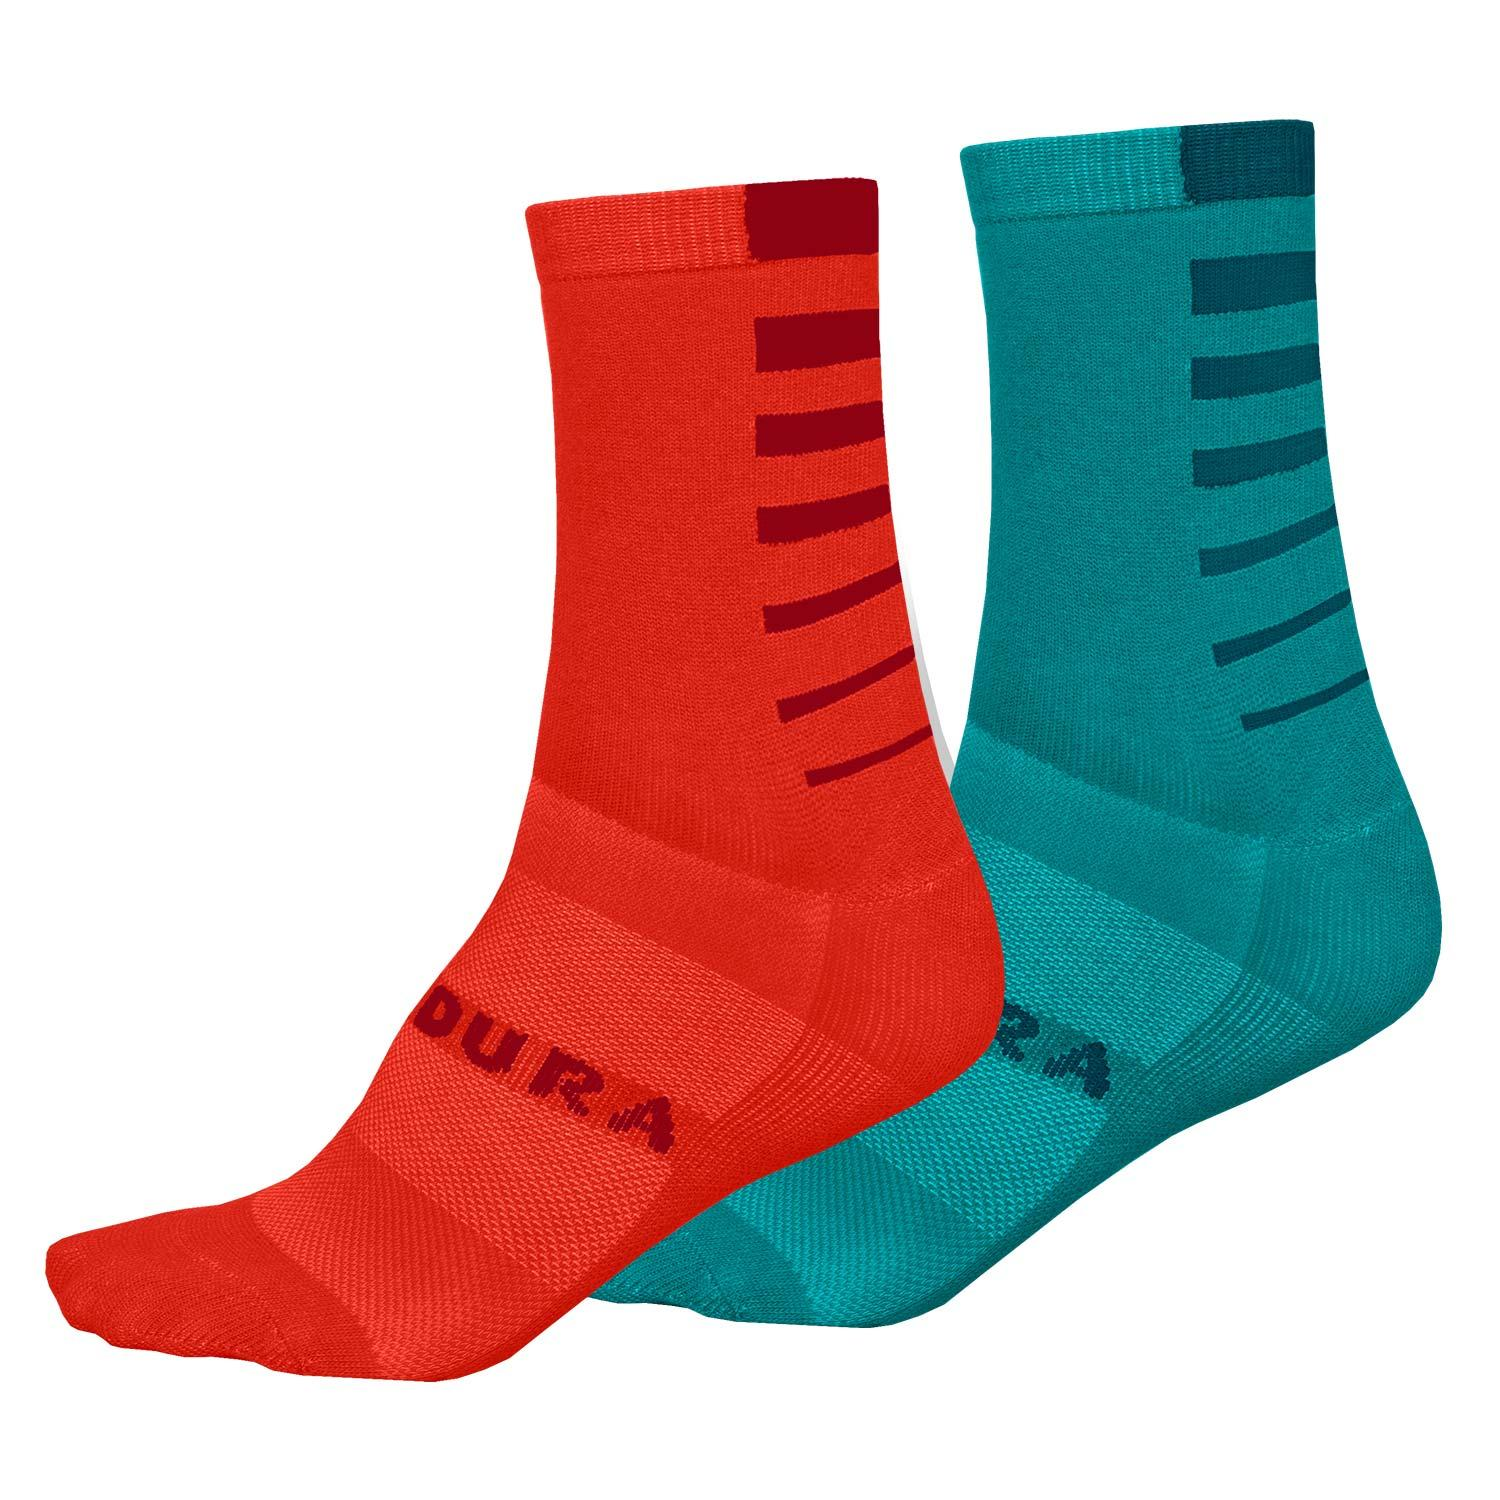 Endura Fietssokken zomer 2 pack Dames Blauw en Roze - Women's Coolmax Stripe Socks (Twin Pack) Pacific Blue en Sunset Pink